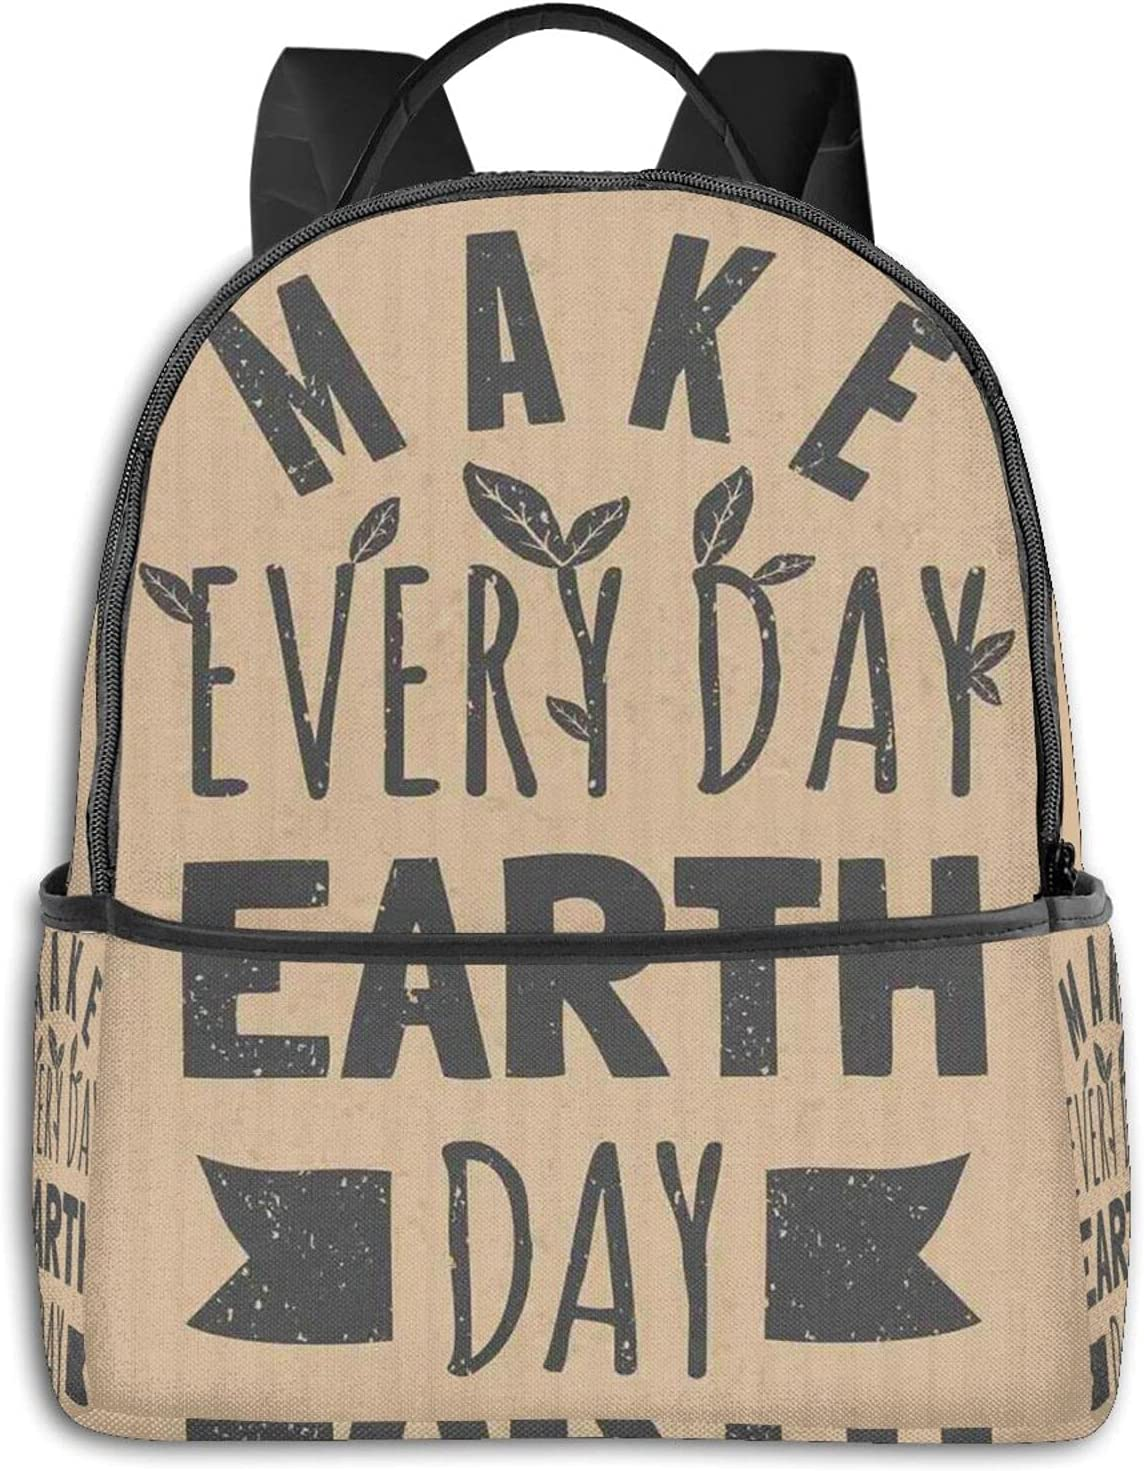 Typographic Design Quote For Earth Day Le With Grunge Low price Max 45% OFF And Effect